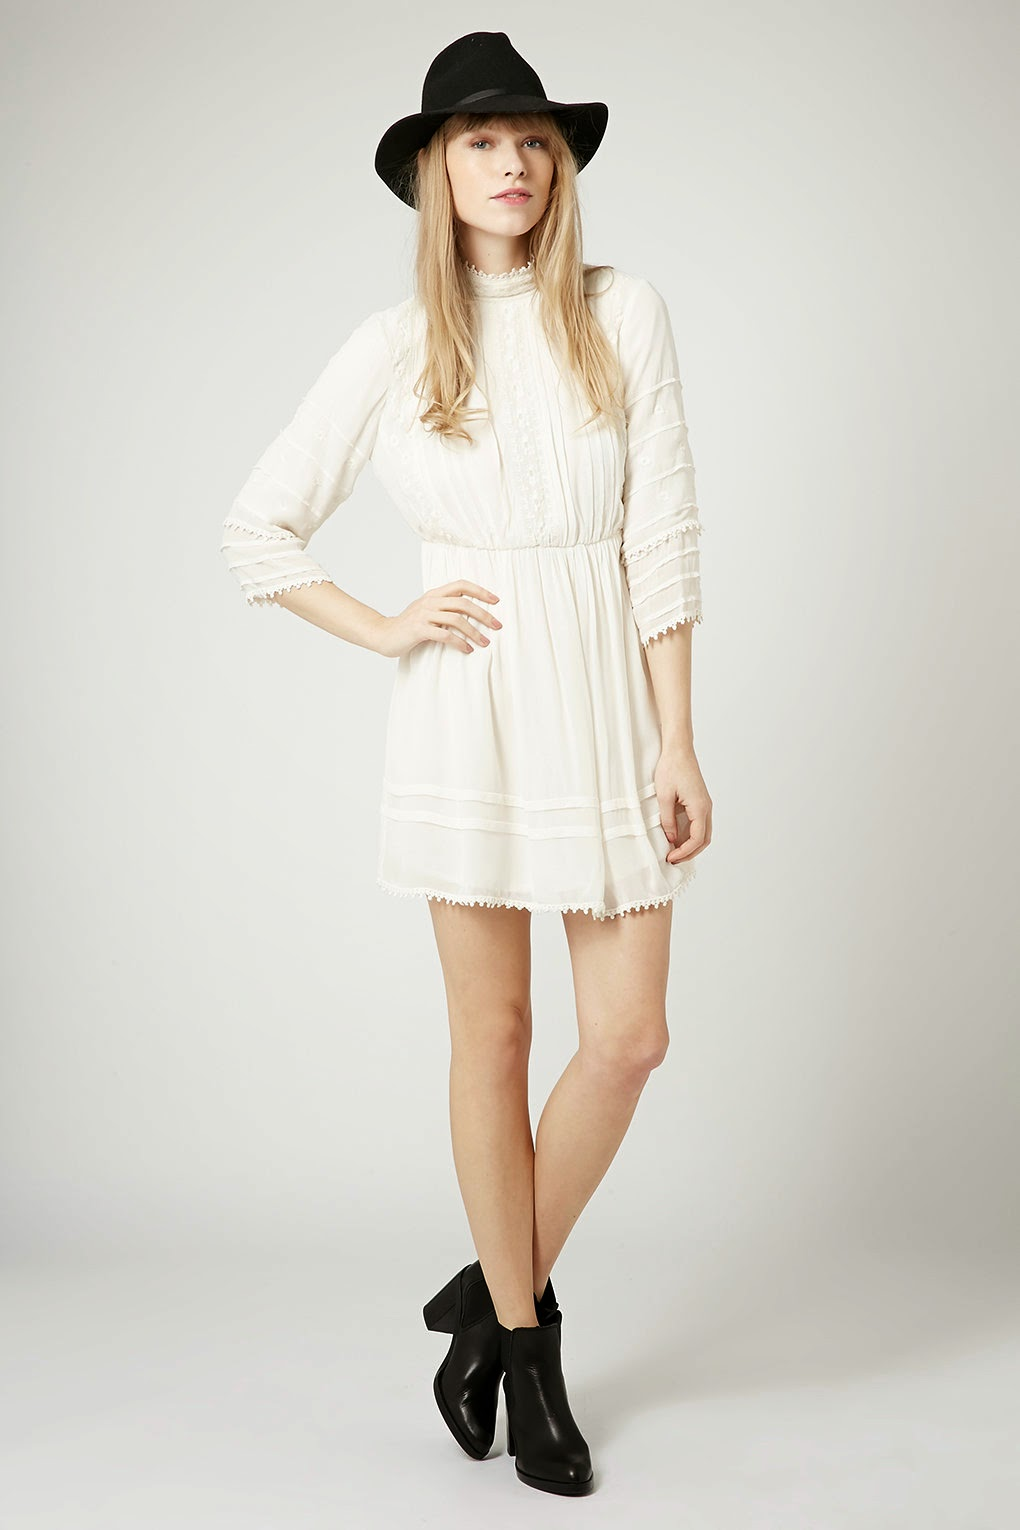 topshop victoriana dress, high neck cream dress,